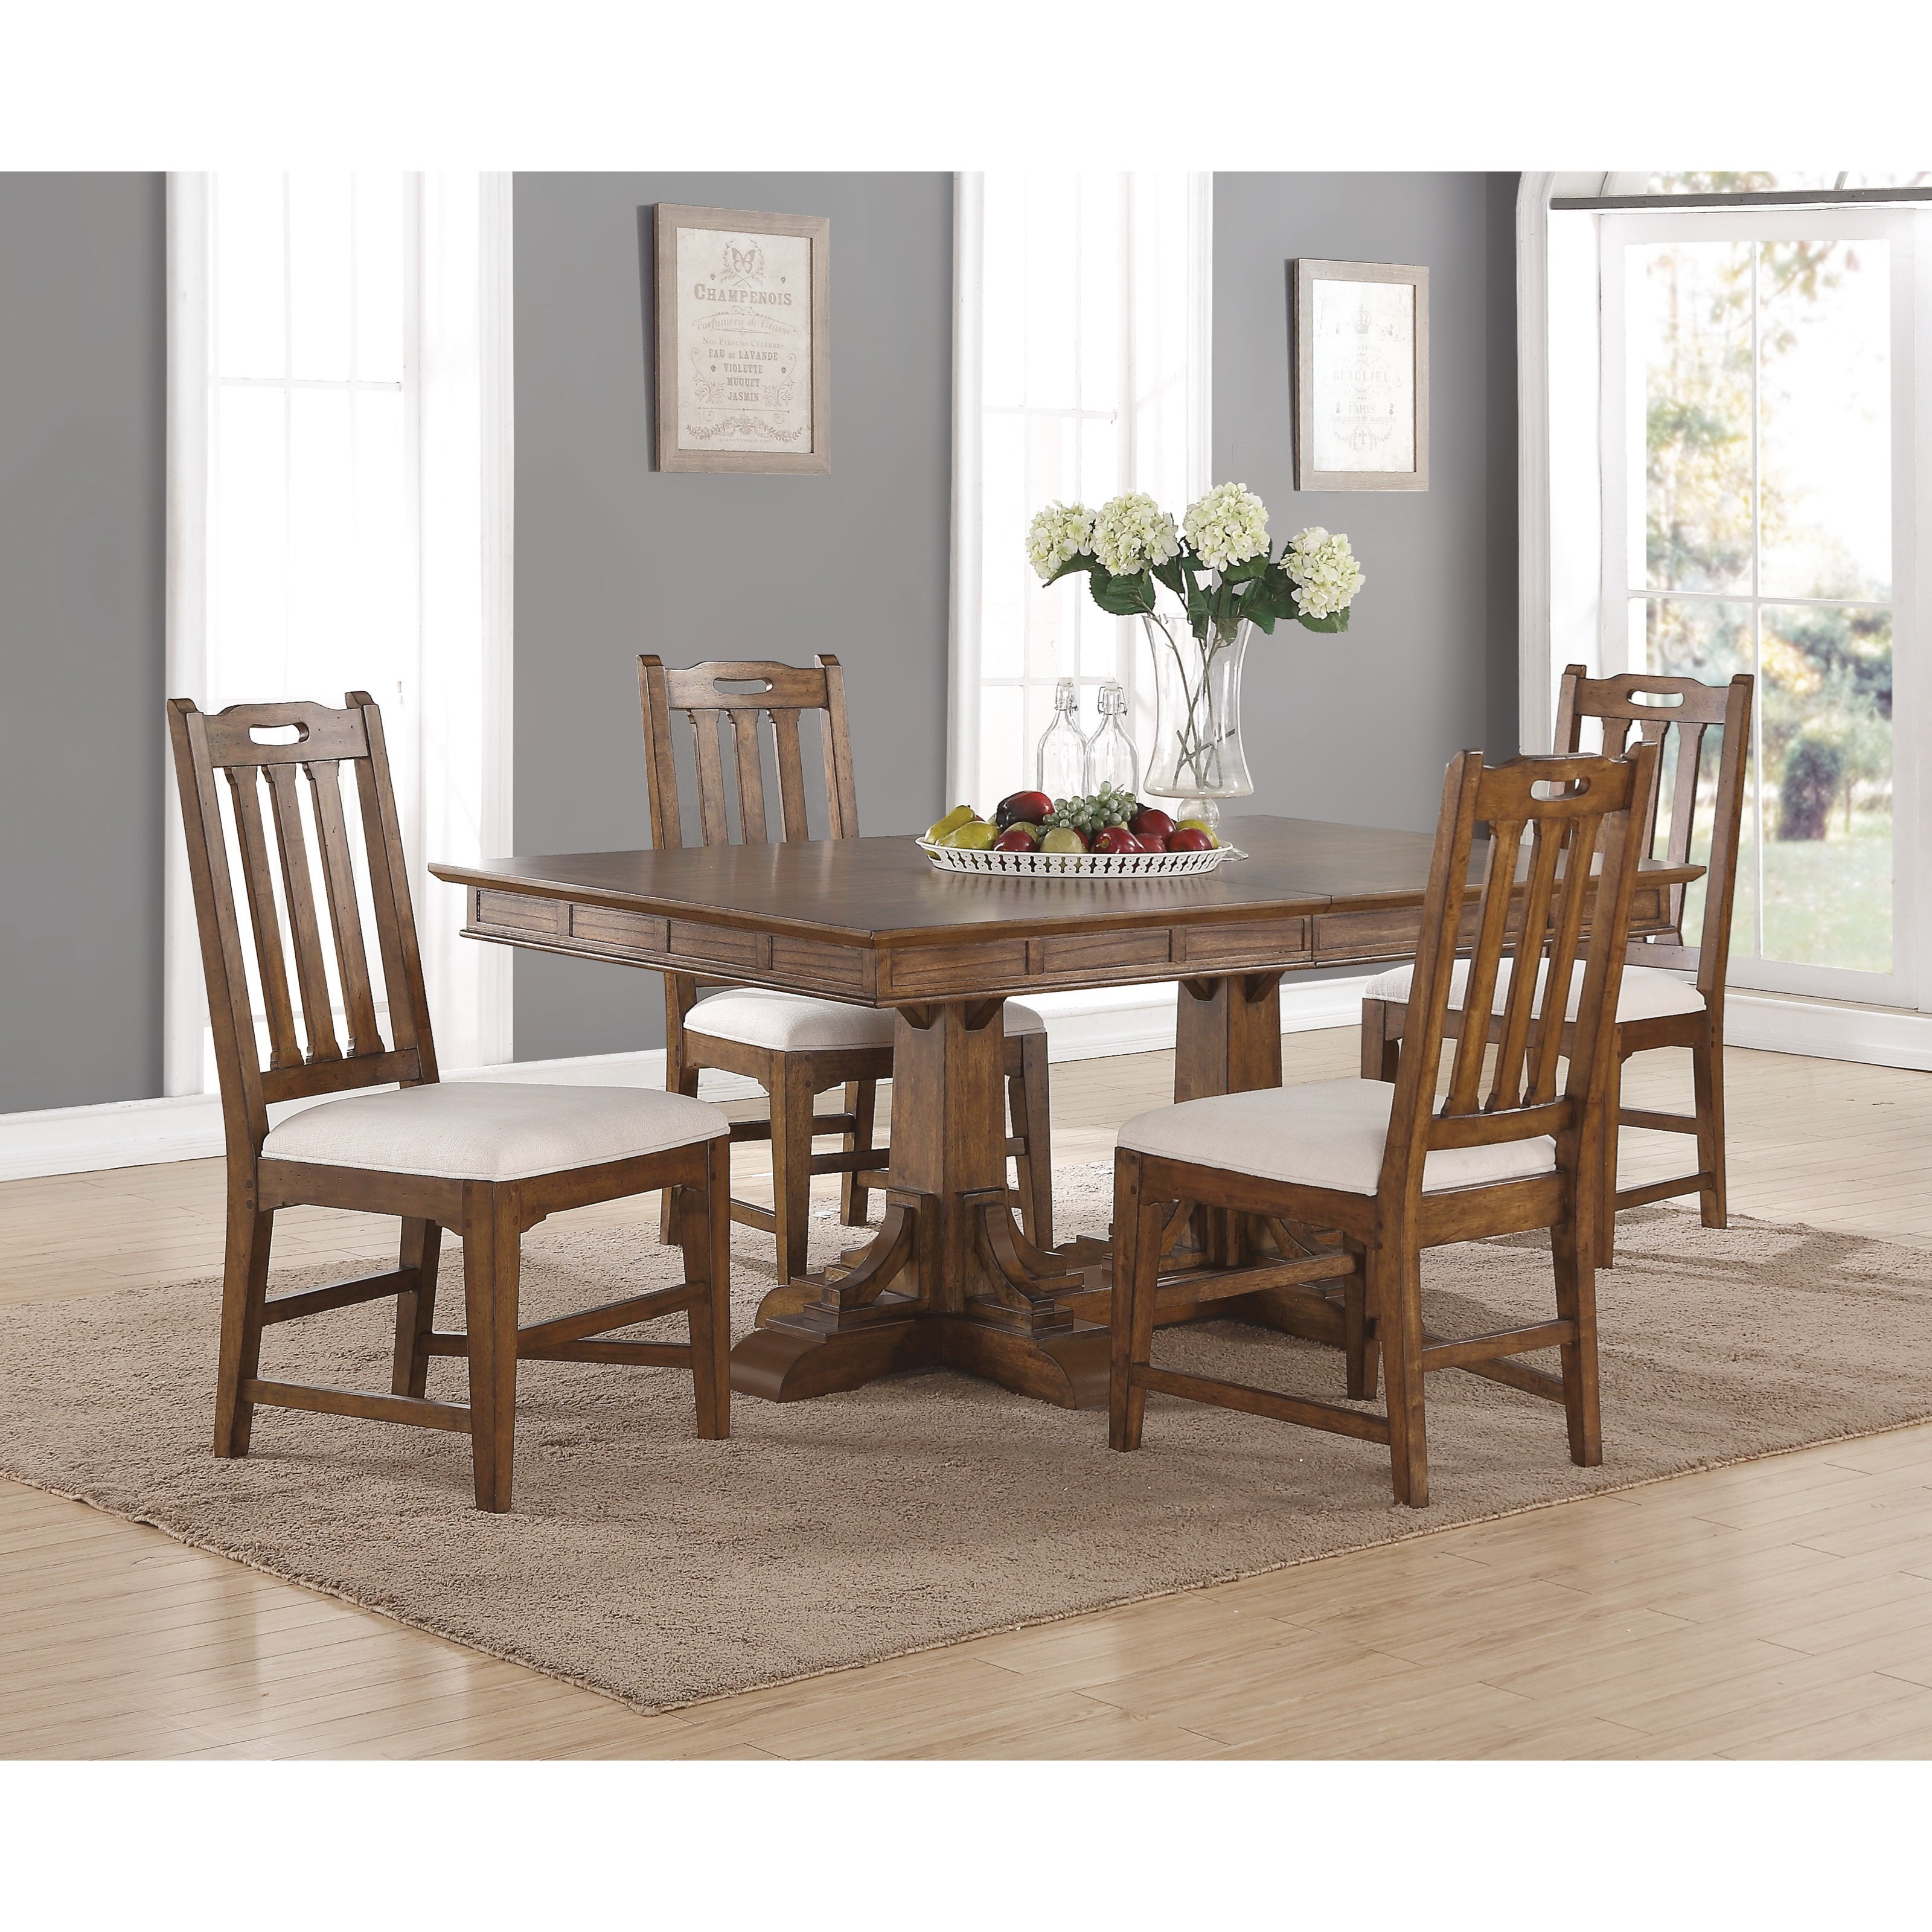 upholstered chairs for dining room fishing chair wowhead flexsteel wynwood collection sonora mission rectangular table and set with removable leaves